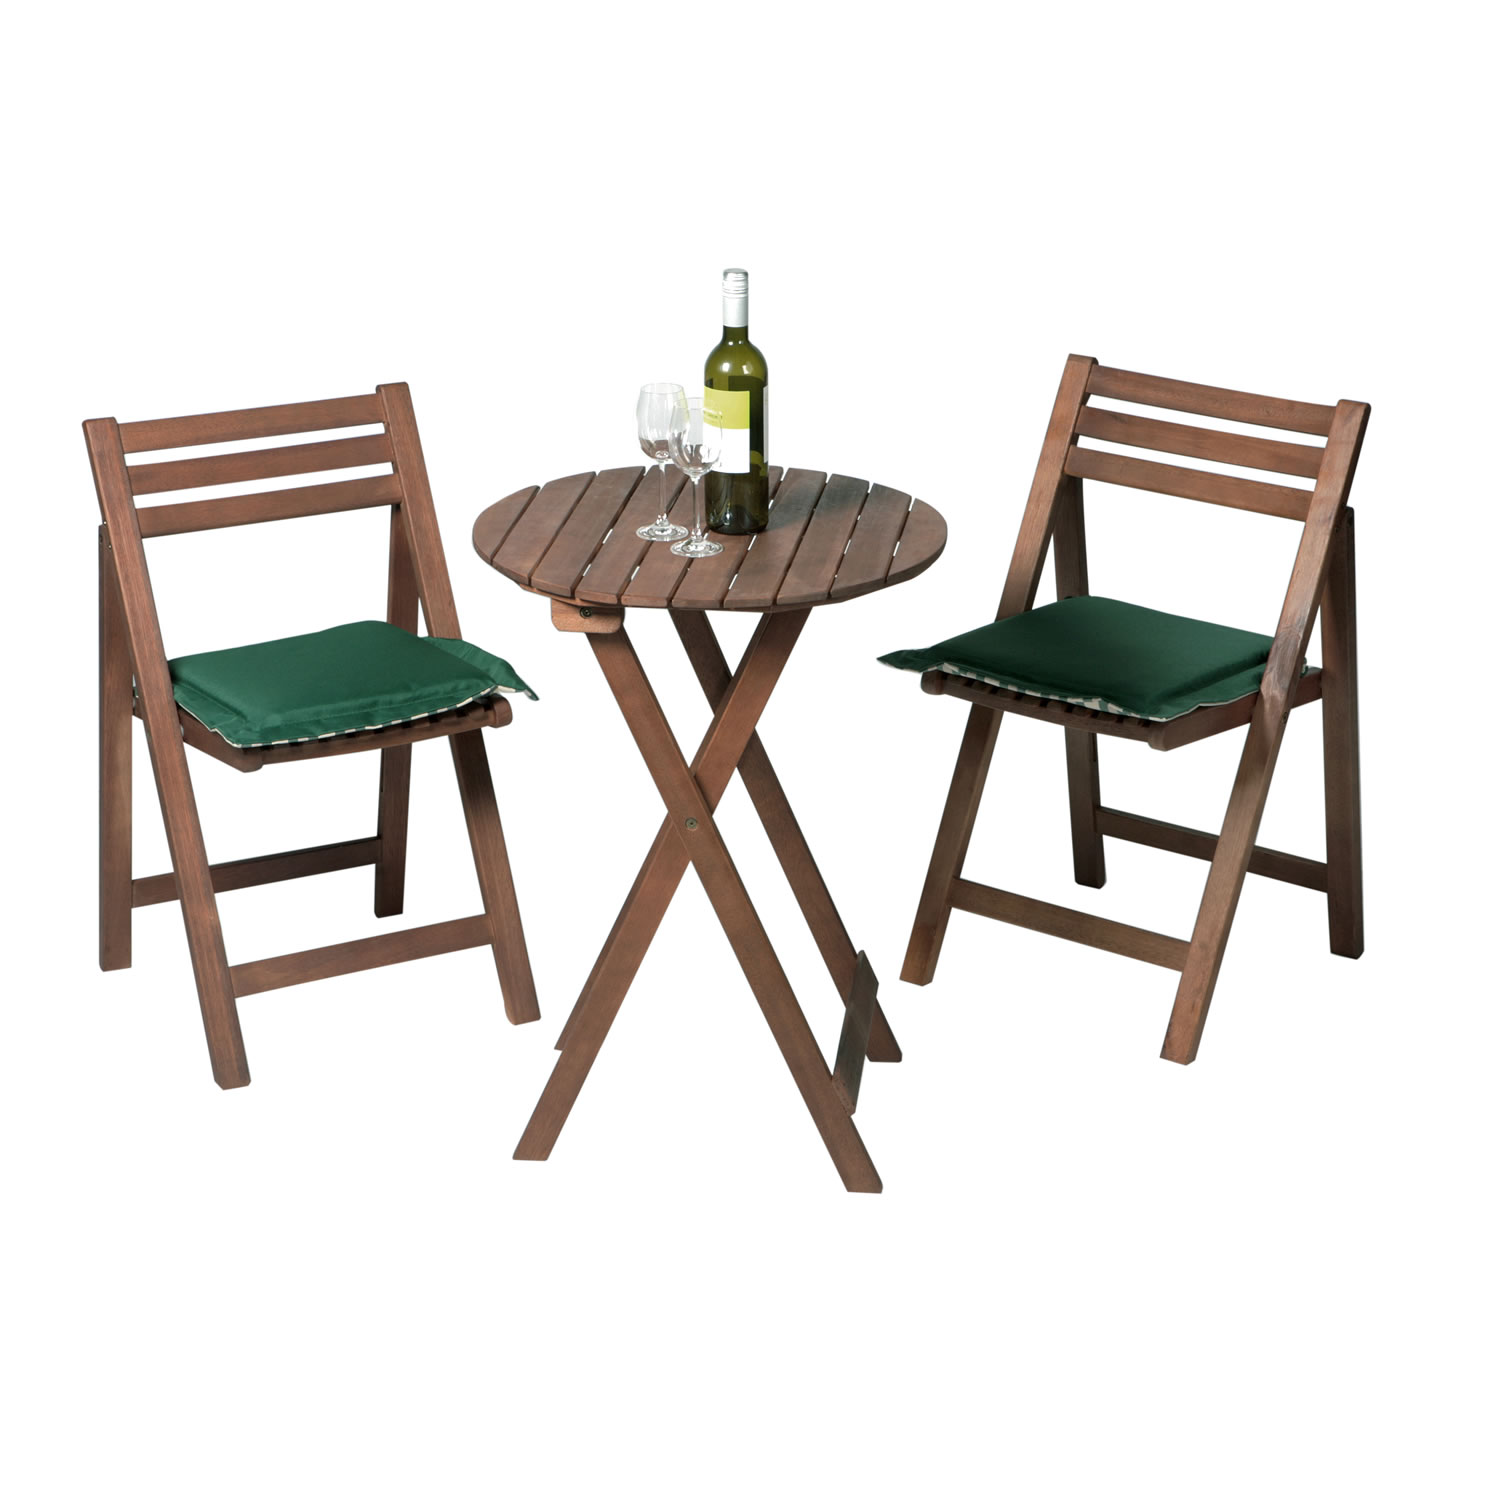 Mesmerizing bistro table and chairs for home furniture ideas with outdoor bistro table and chairs